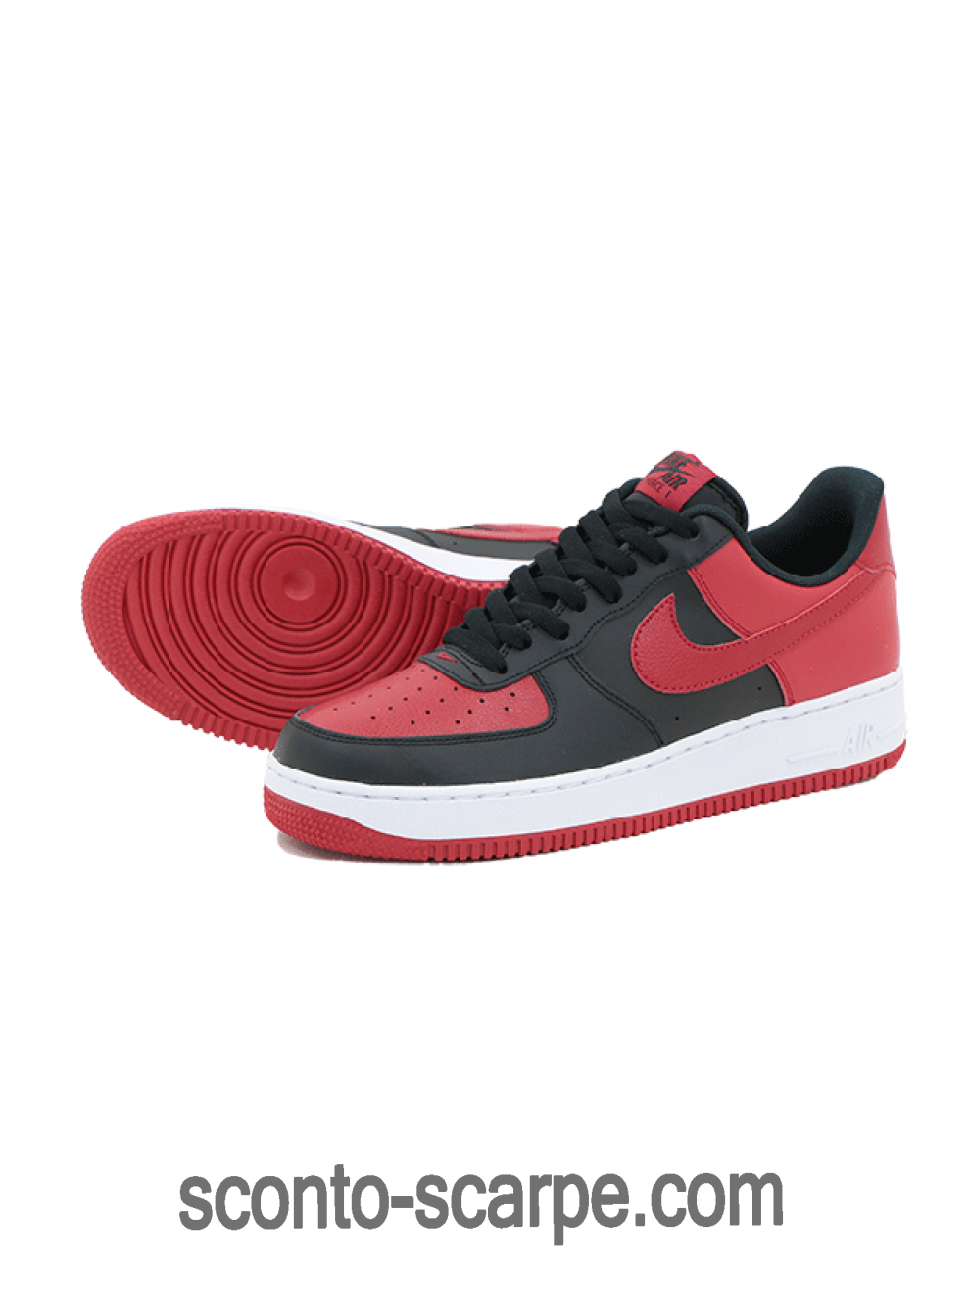 Nike Air Force 1 Low J-Pack Nere/Palestra rosse-Bianche 820266-009 Con Nizza Modello